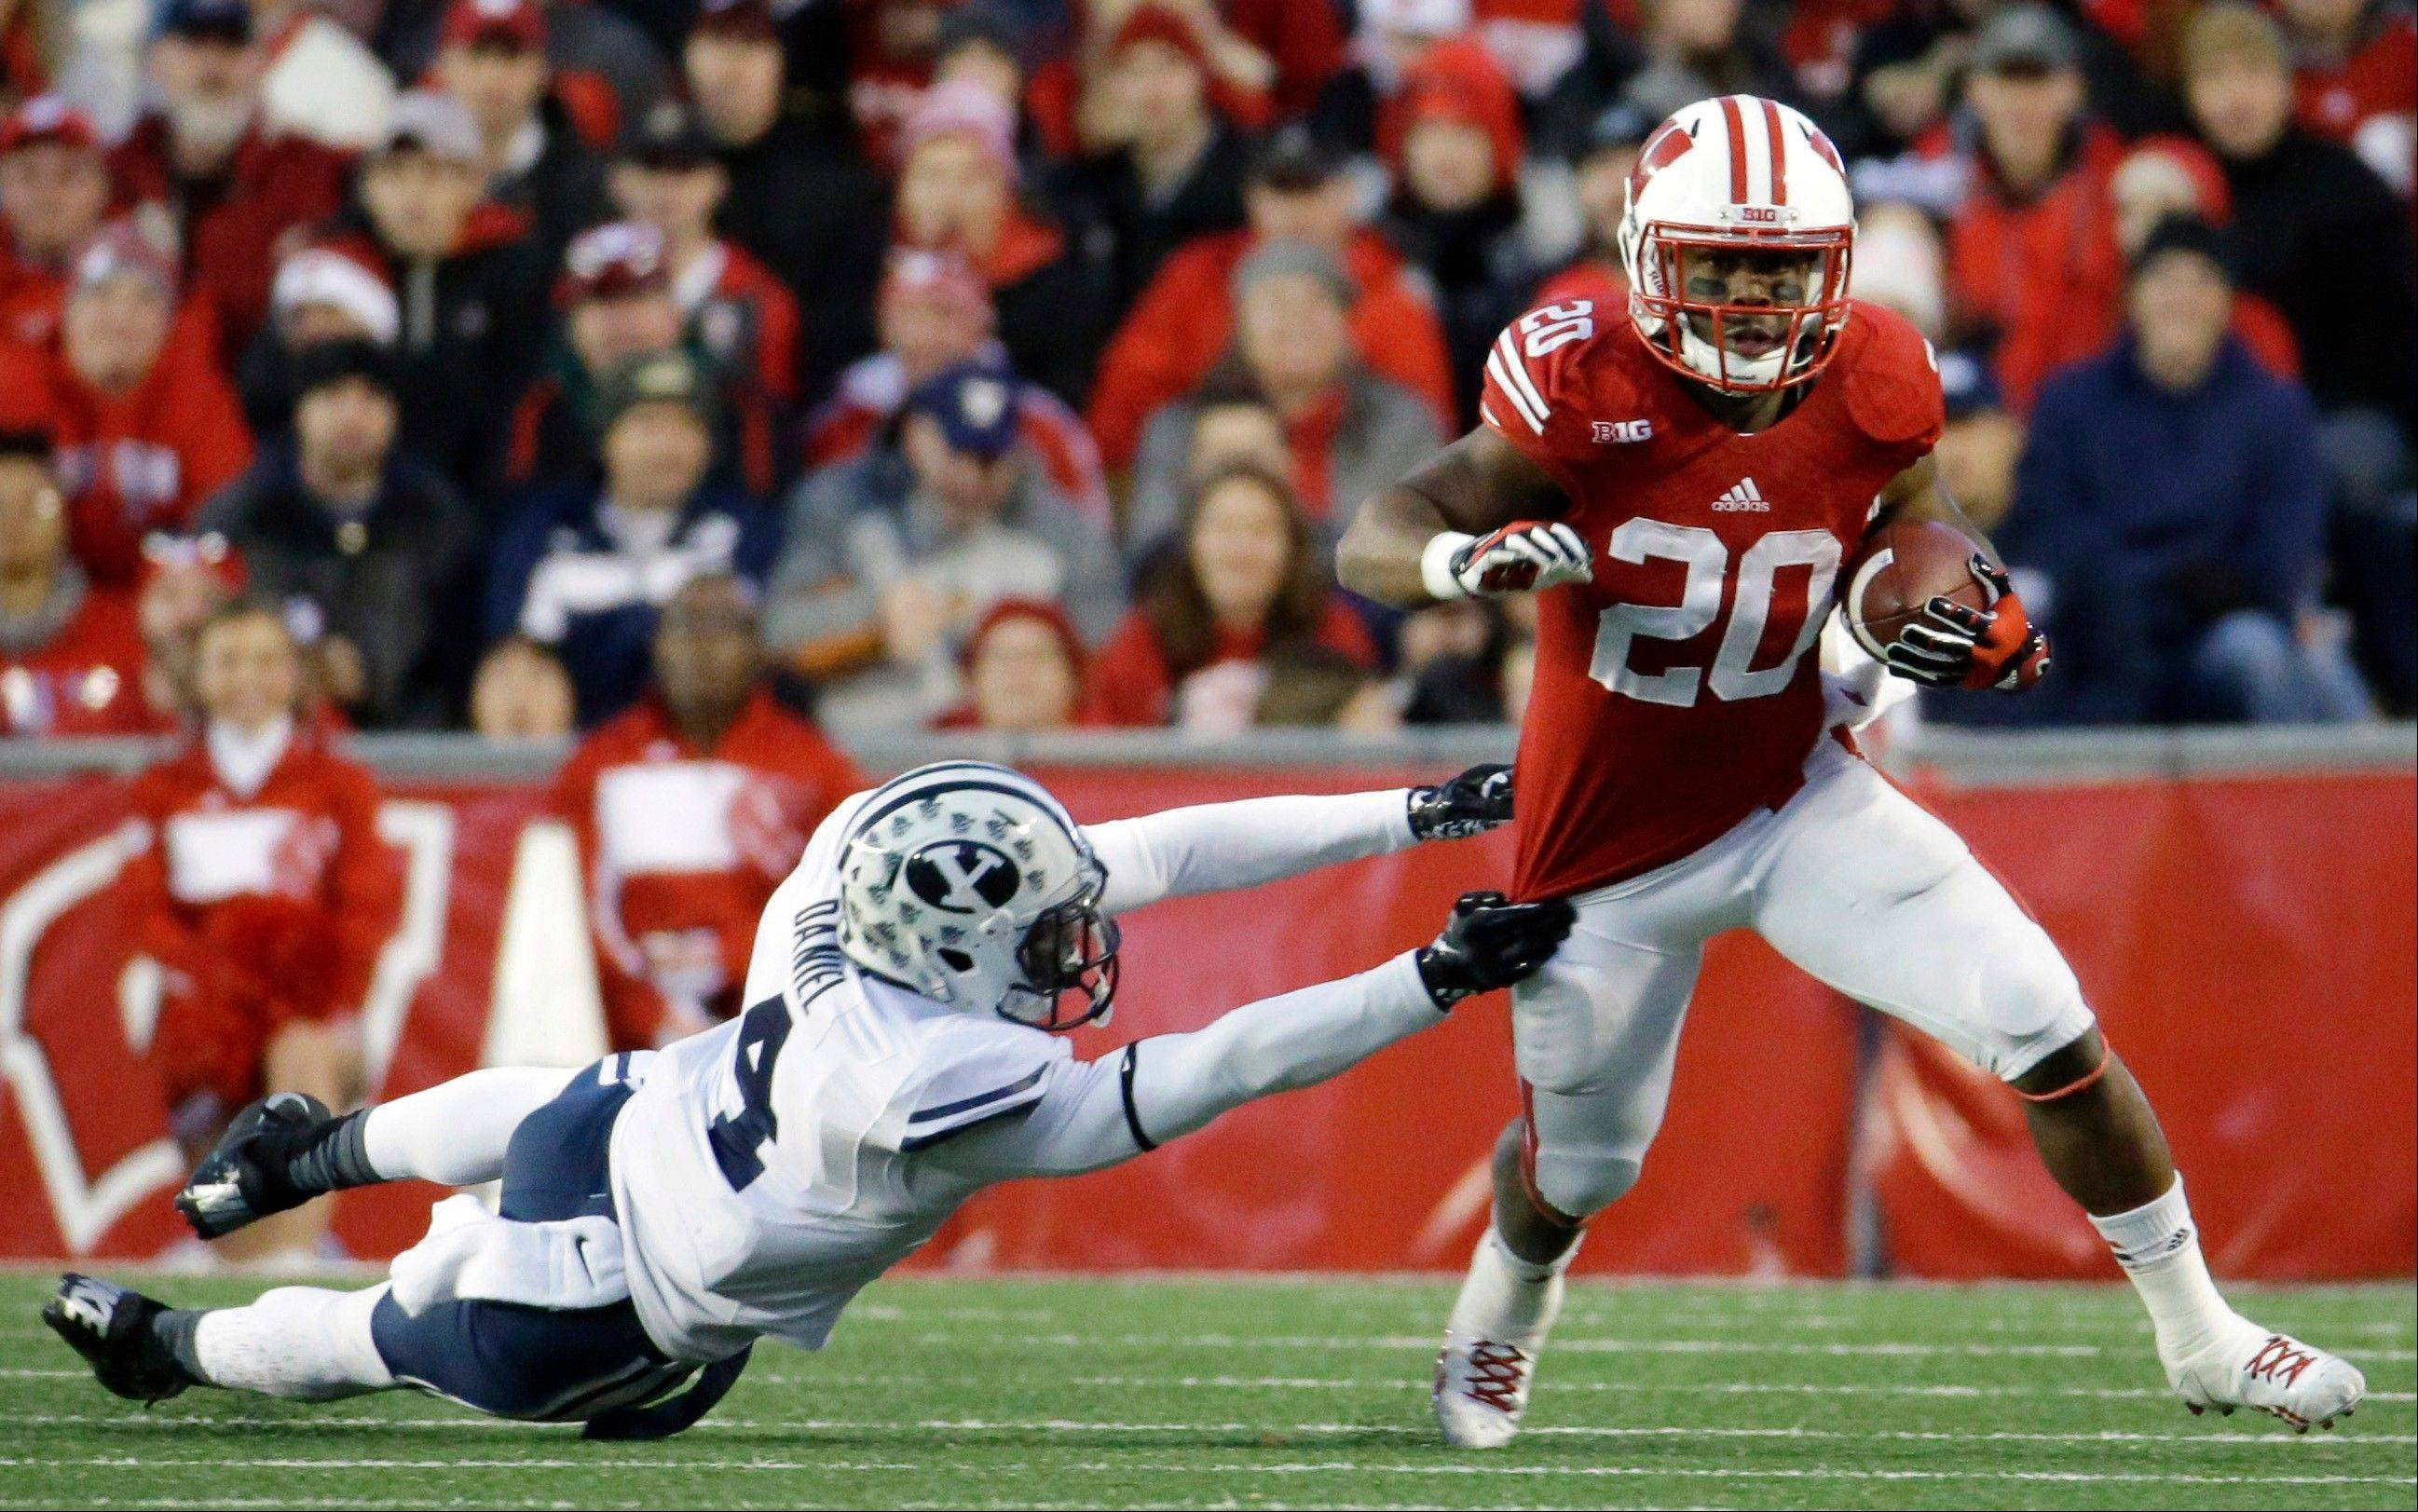 Wisconsin�s James White, right, gets past Brigham Young�s Robertson Daniel during the second half of Saturday�s game in Madison. Wisconsin won 27-17.